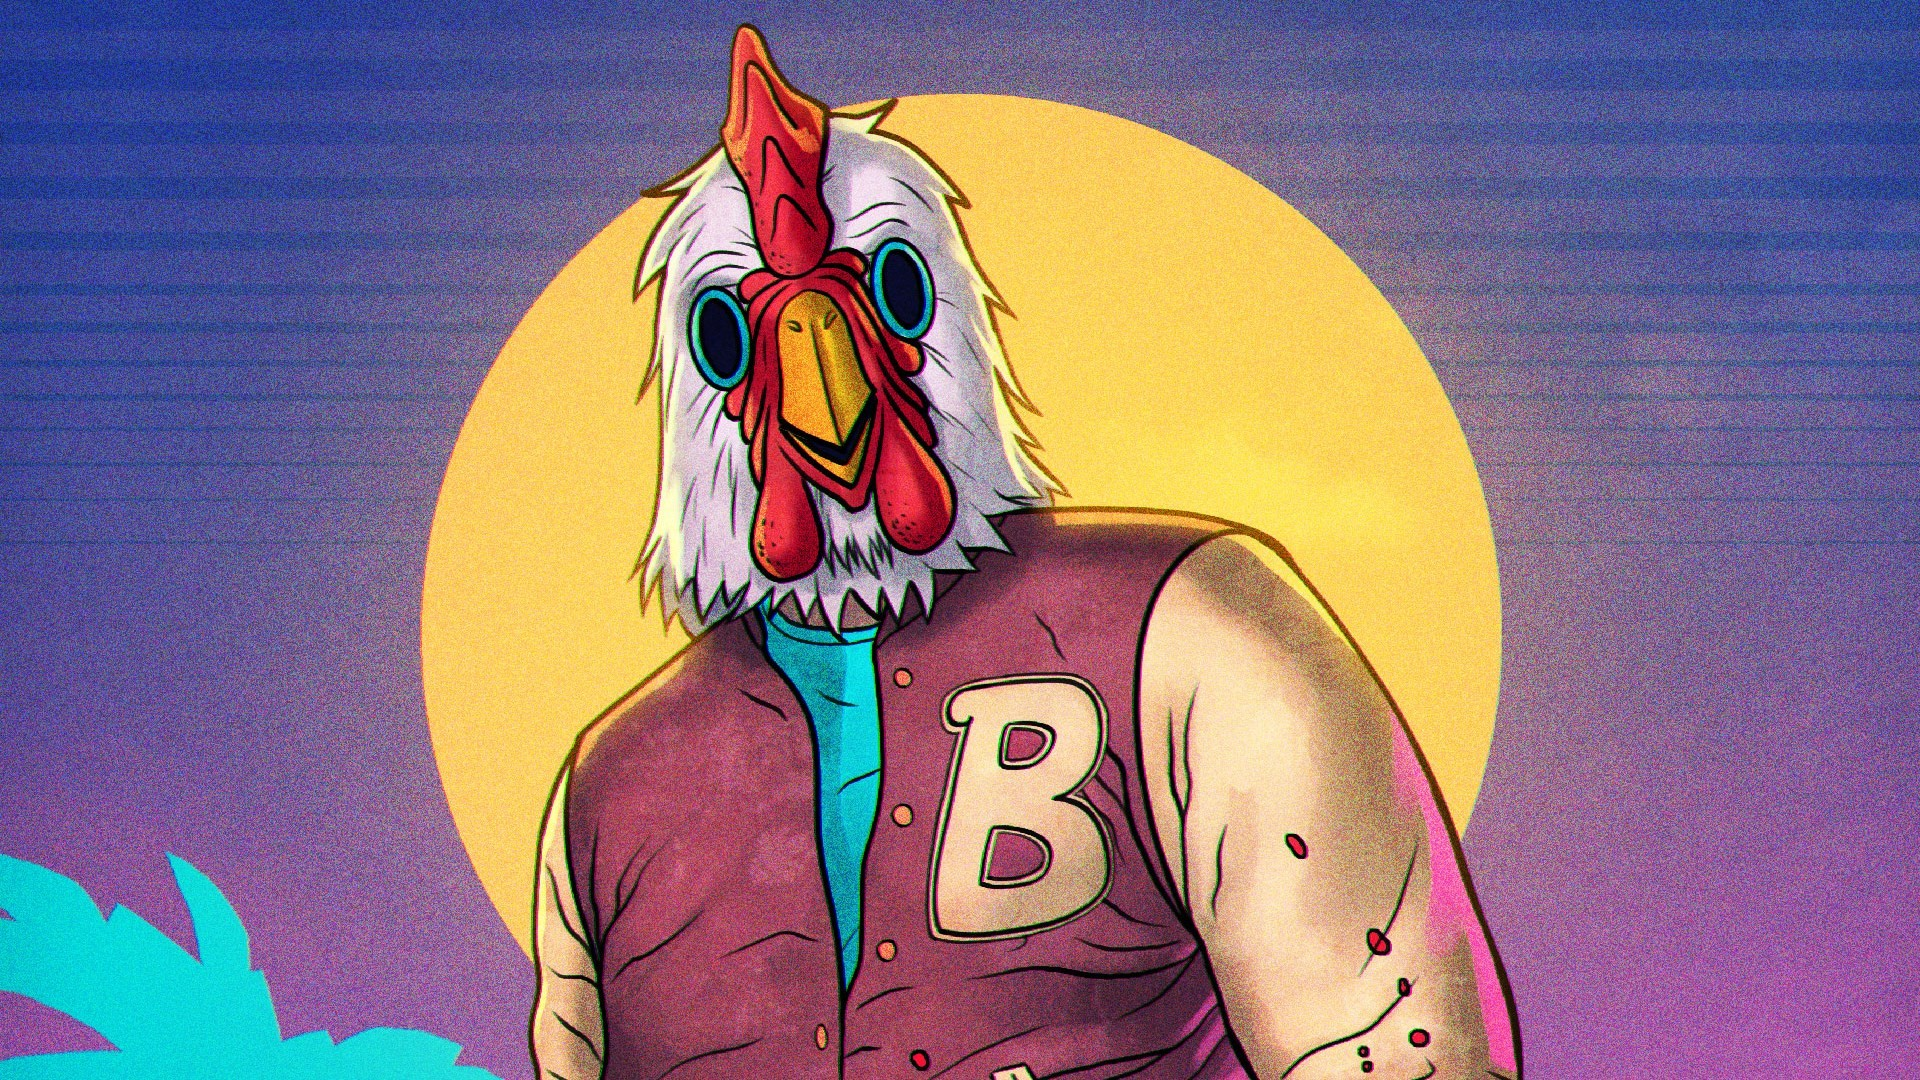 HQ RES hotline miami 2 wrong number pic, Smith Butler 2017-03-22